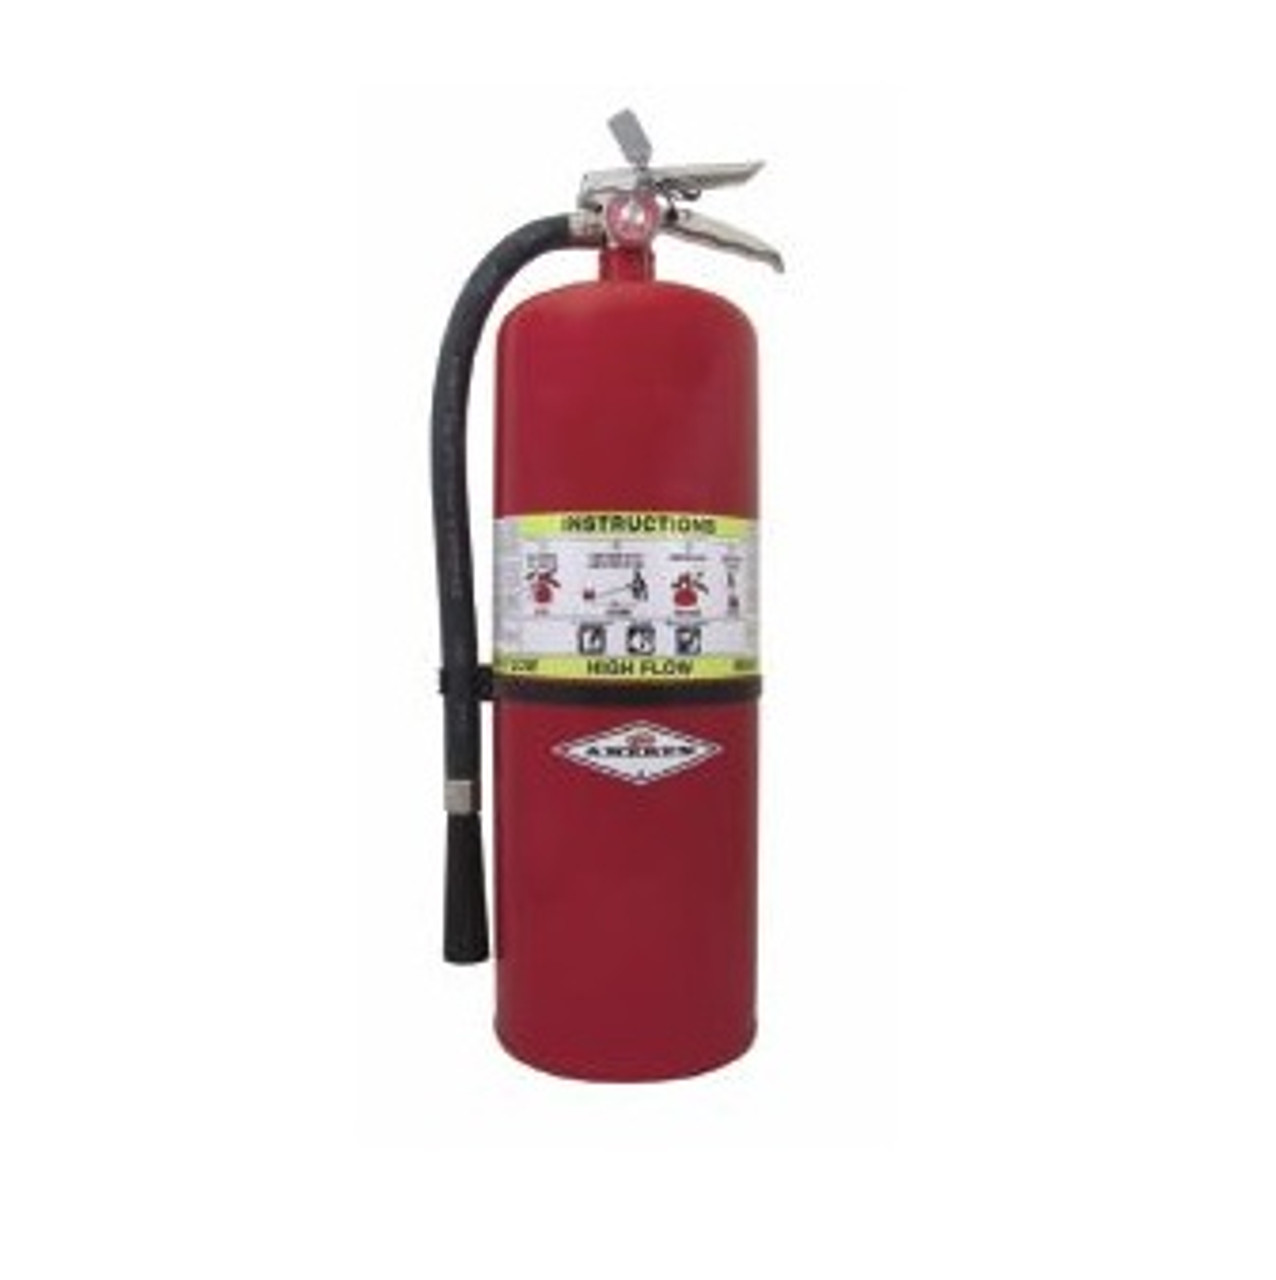 Amerex 760 - 20 lb ABC High Flow Dry Chemical Fire Extinguisher